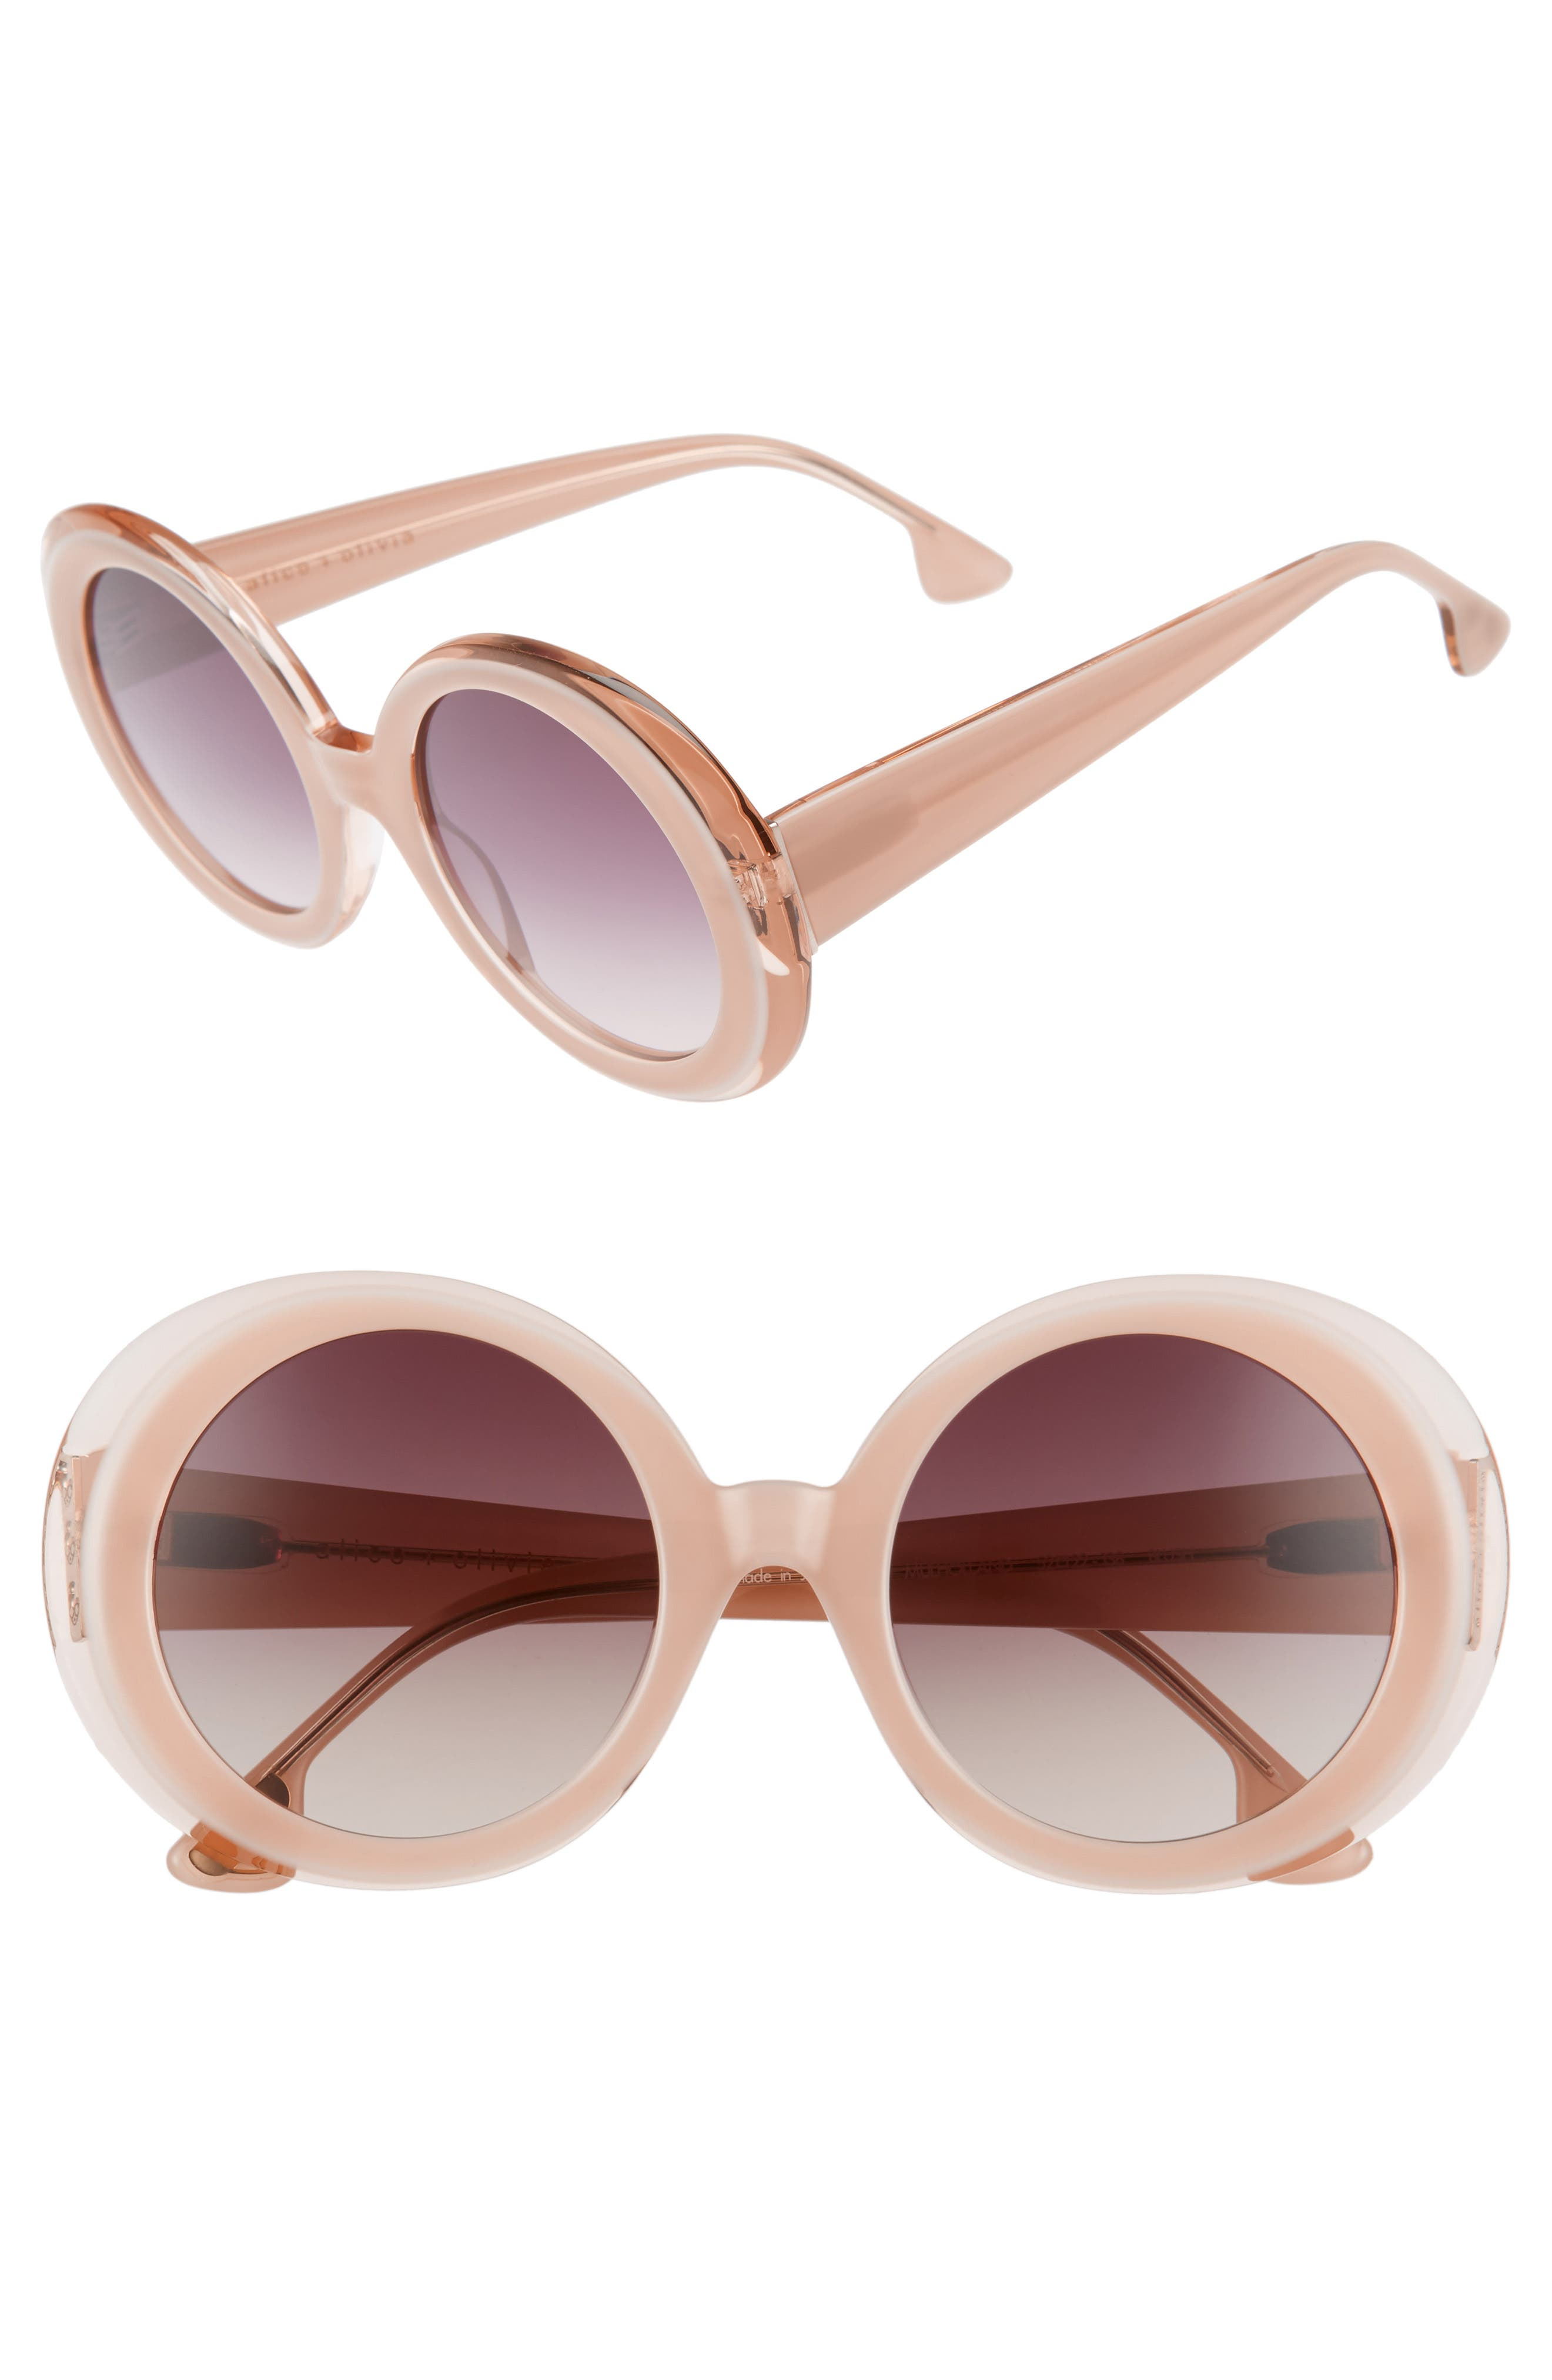 Mulholland 52mm Round Gradient Sunglasses,                             Main thumbnail 1, color,                             Blush